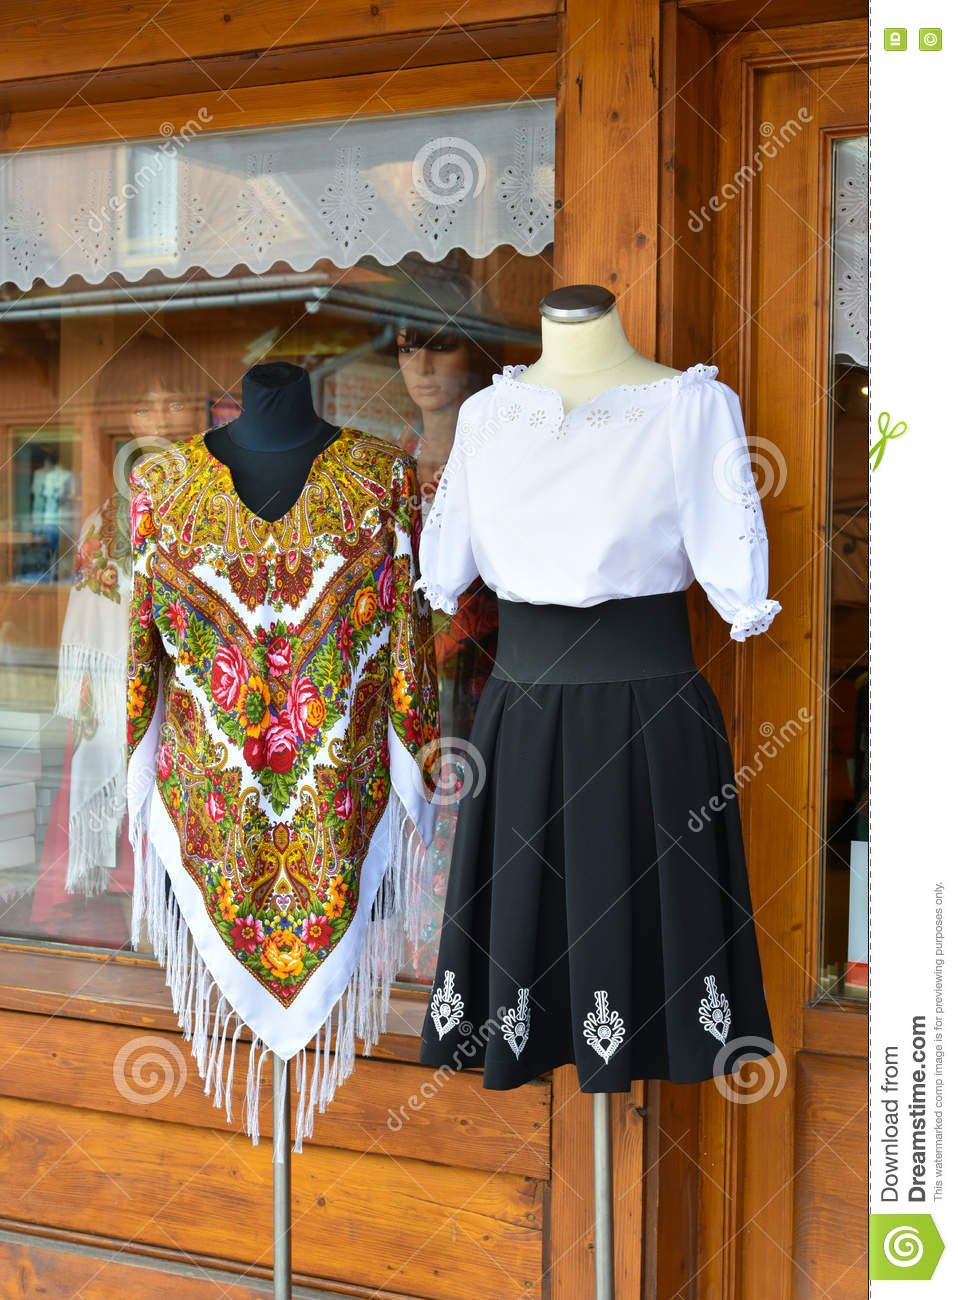 efff2b4a6dab Traditional polish outfit stock image. Image of manufacture - 74342441